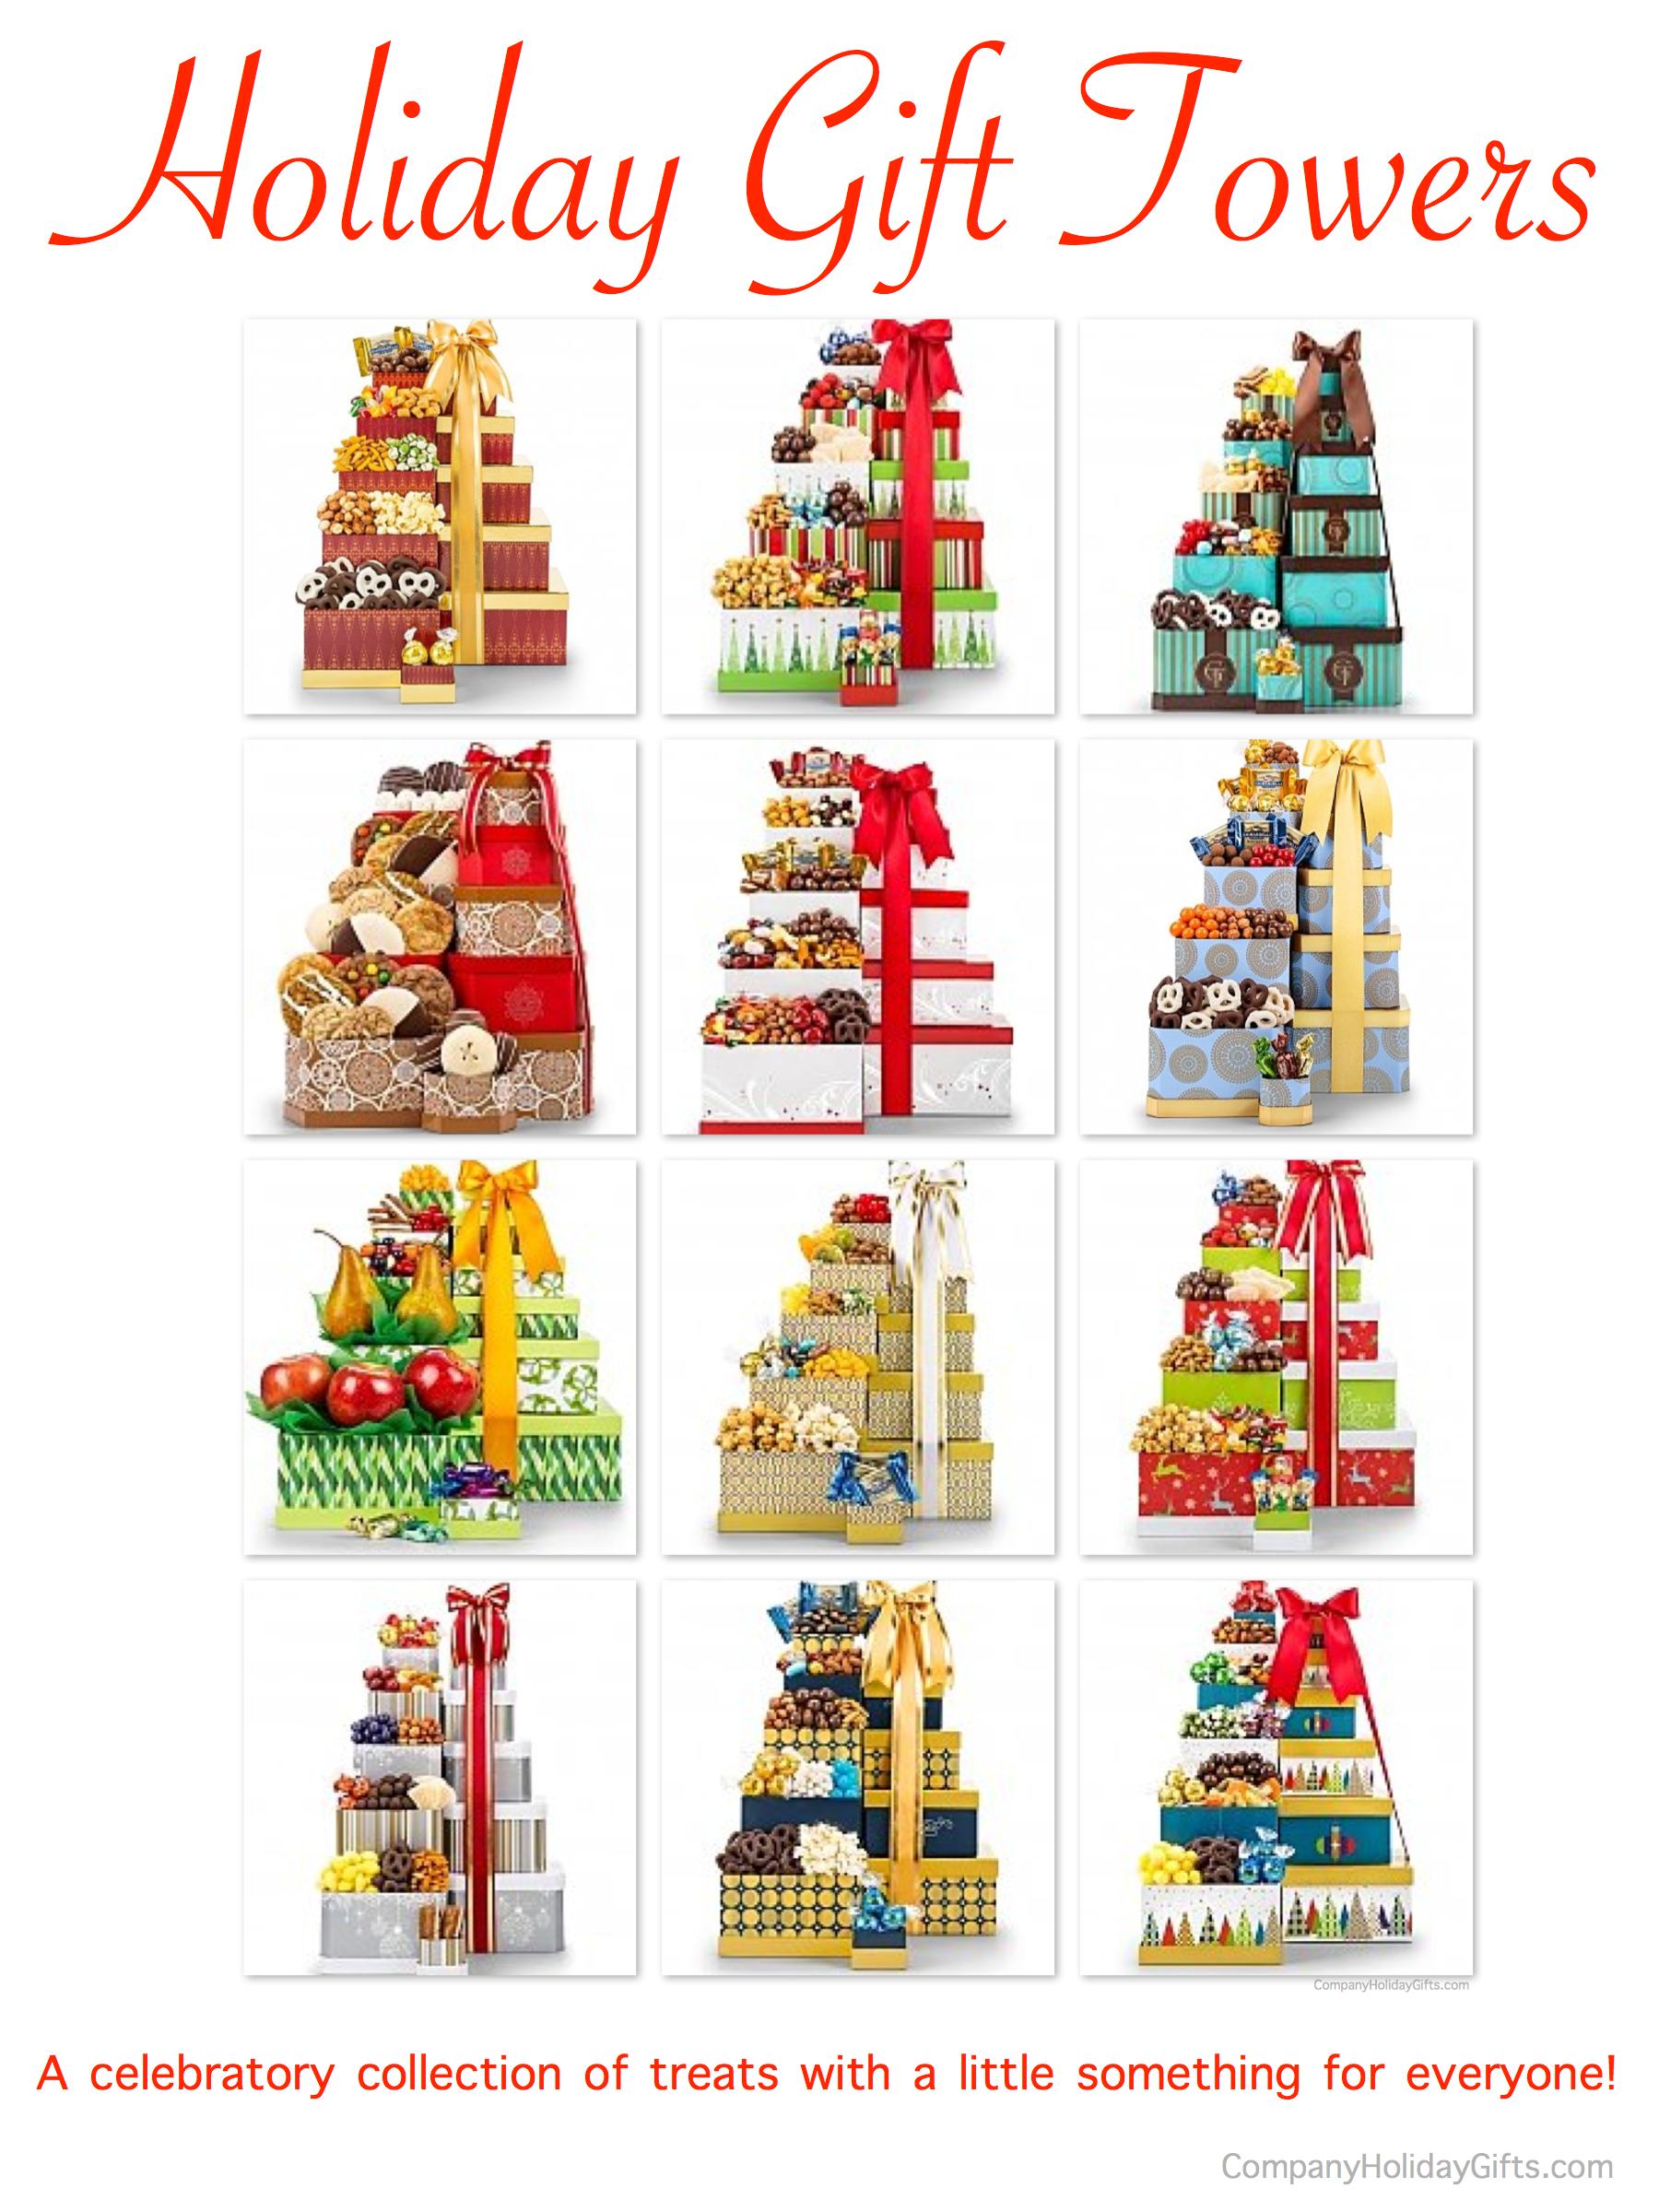 Holiday Gift Towers, 20 Best Company Holiday Gift Ideas Under $100.00